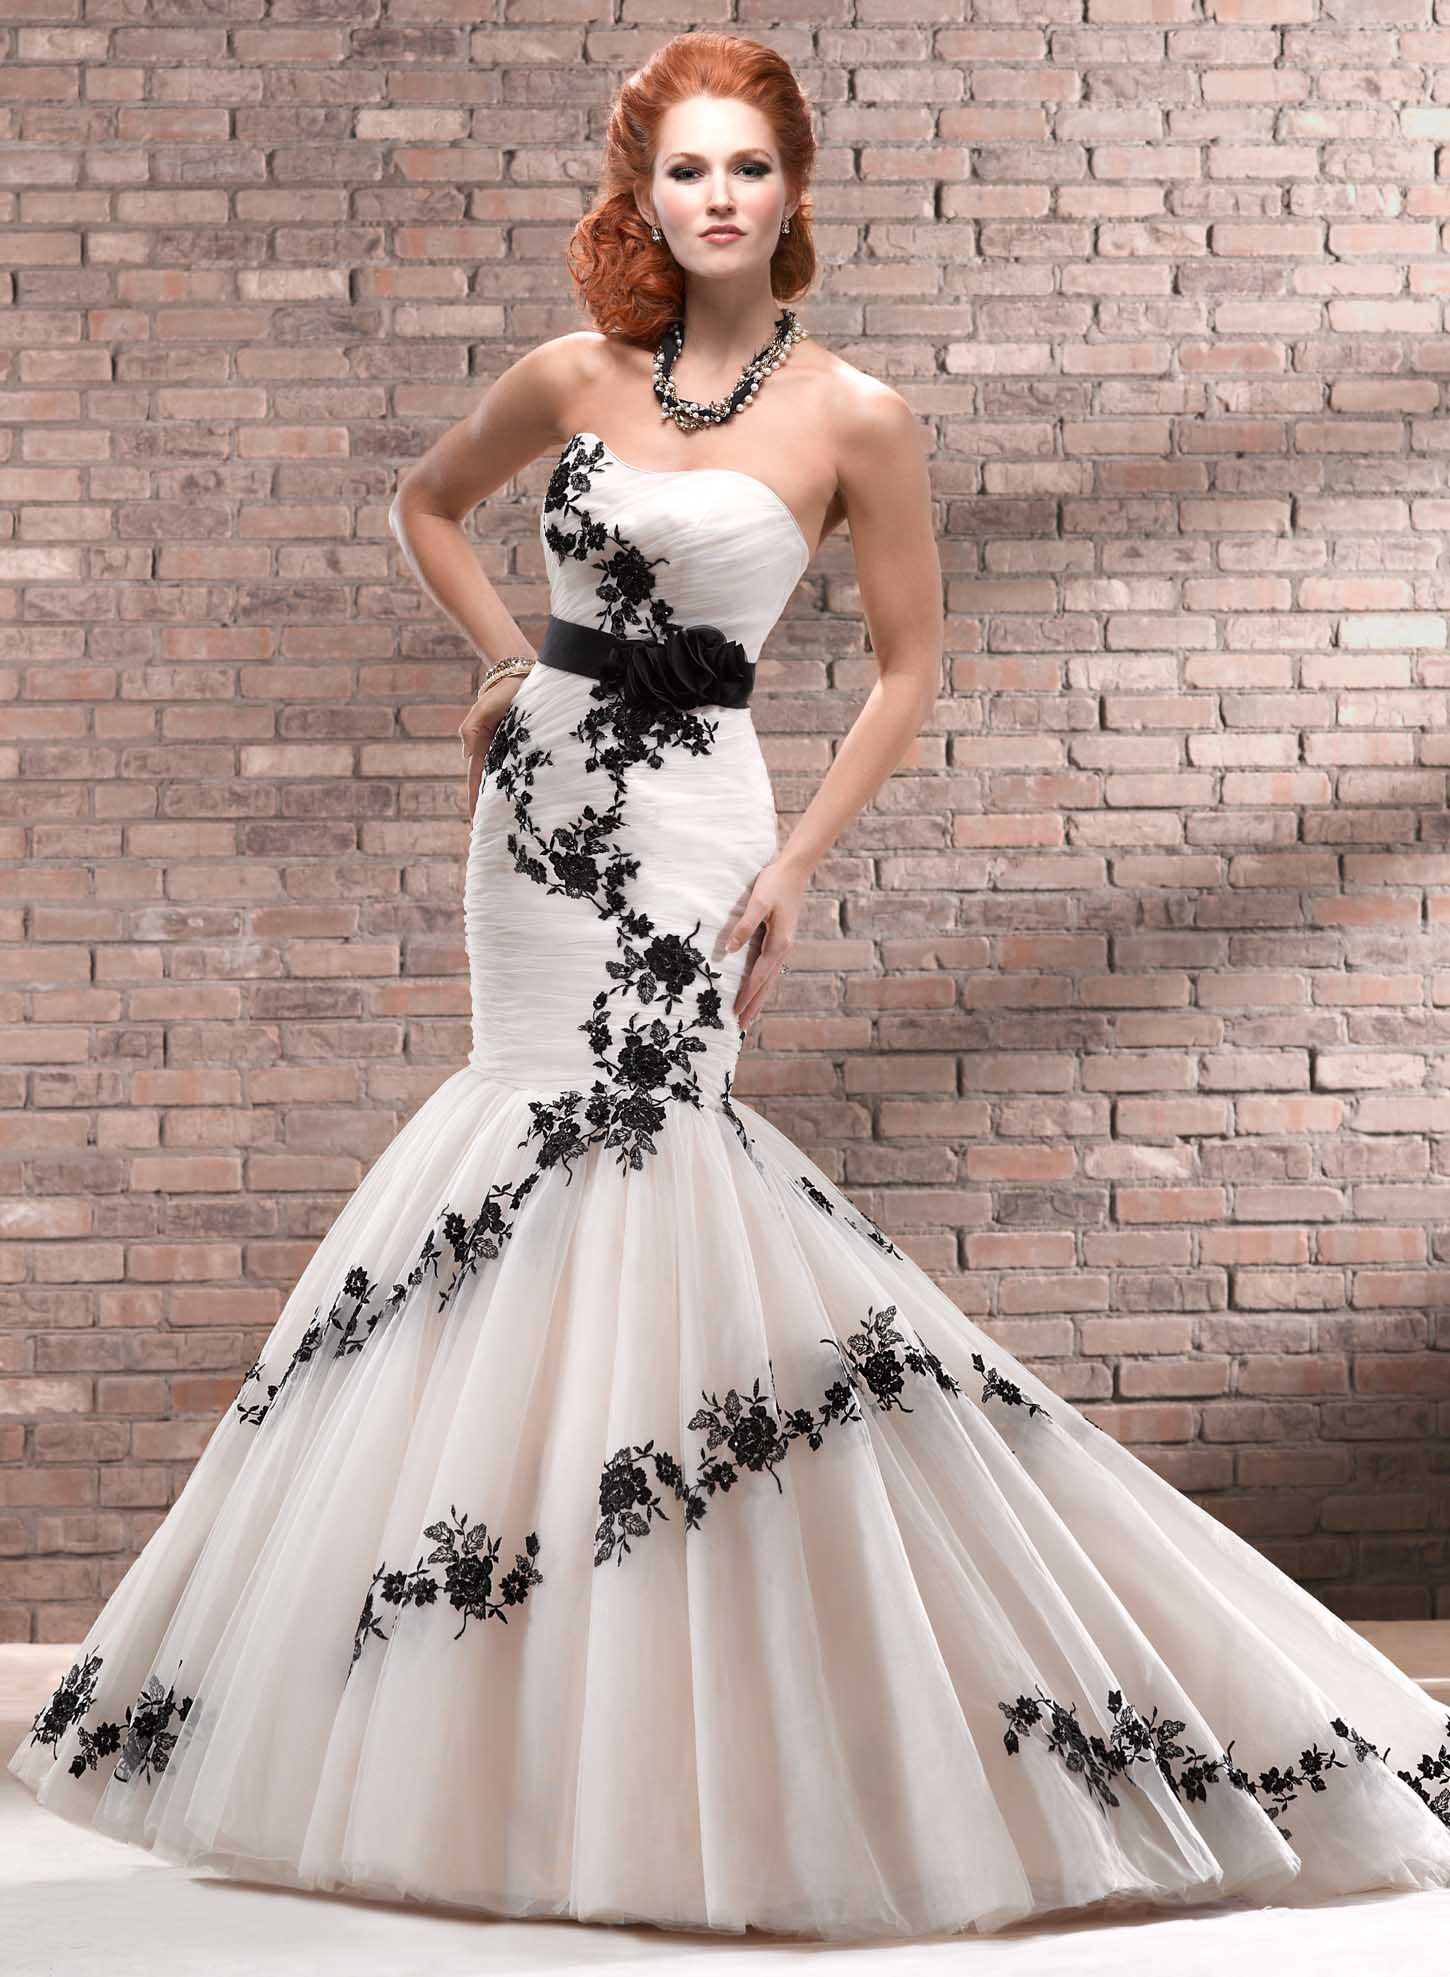 black wedding dresses wedding dresses black Black and White Wedding Dresses